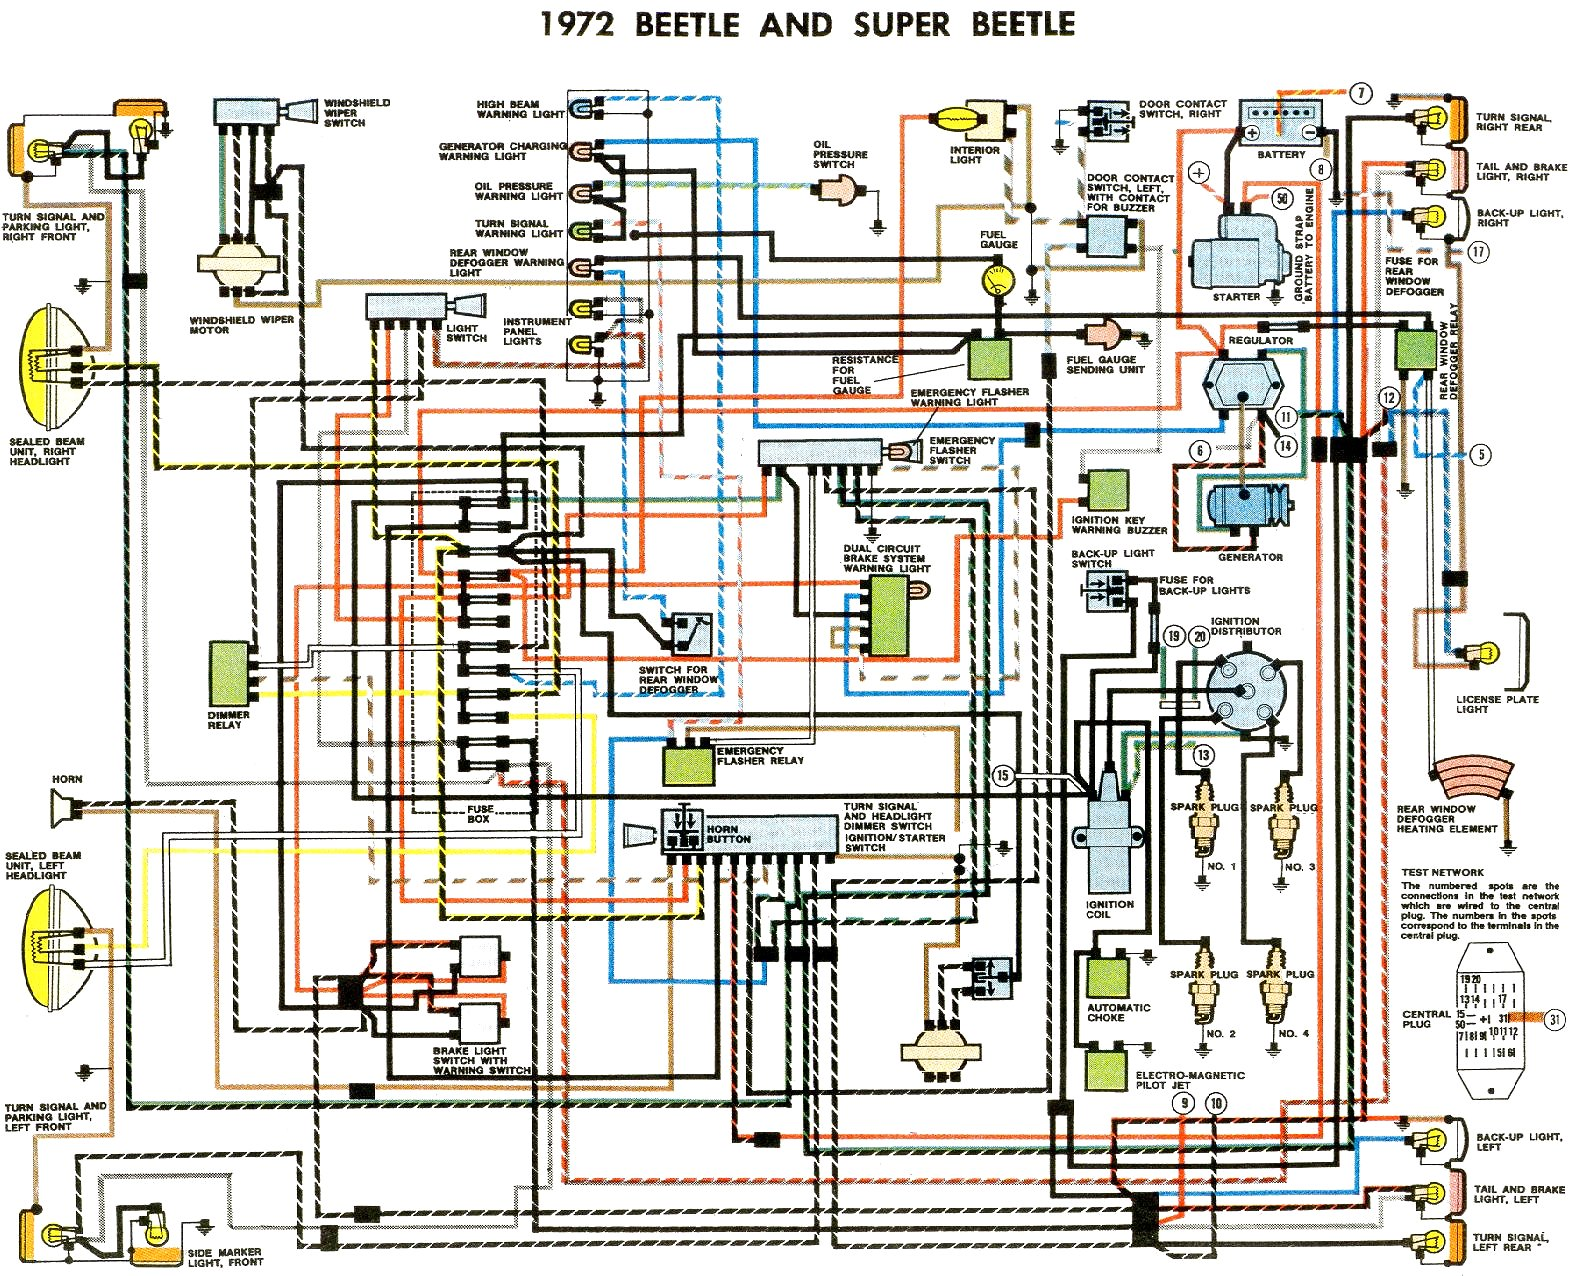 1972 VW Super Beetle Wiring Diagram also 1971 VW Beetle Wiring Diagram also 72 VW Beetle Wiring Diagram also 2015 Chevrolet Tahoe Z71 likewise Fuse Box Wiring Diagram. on 71 beetle wiring diagram